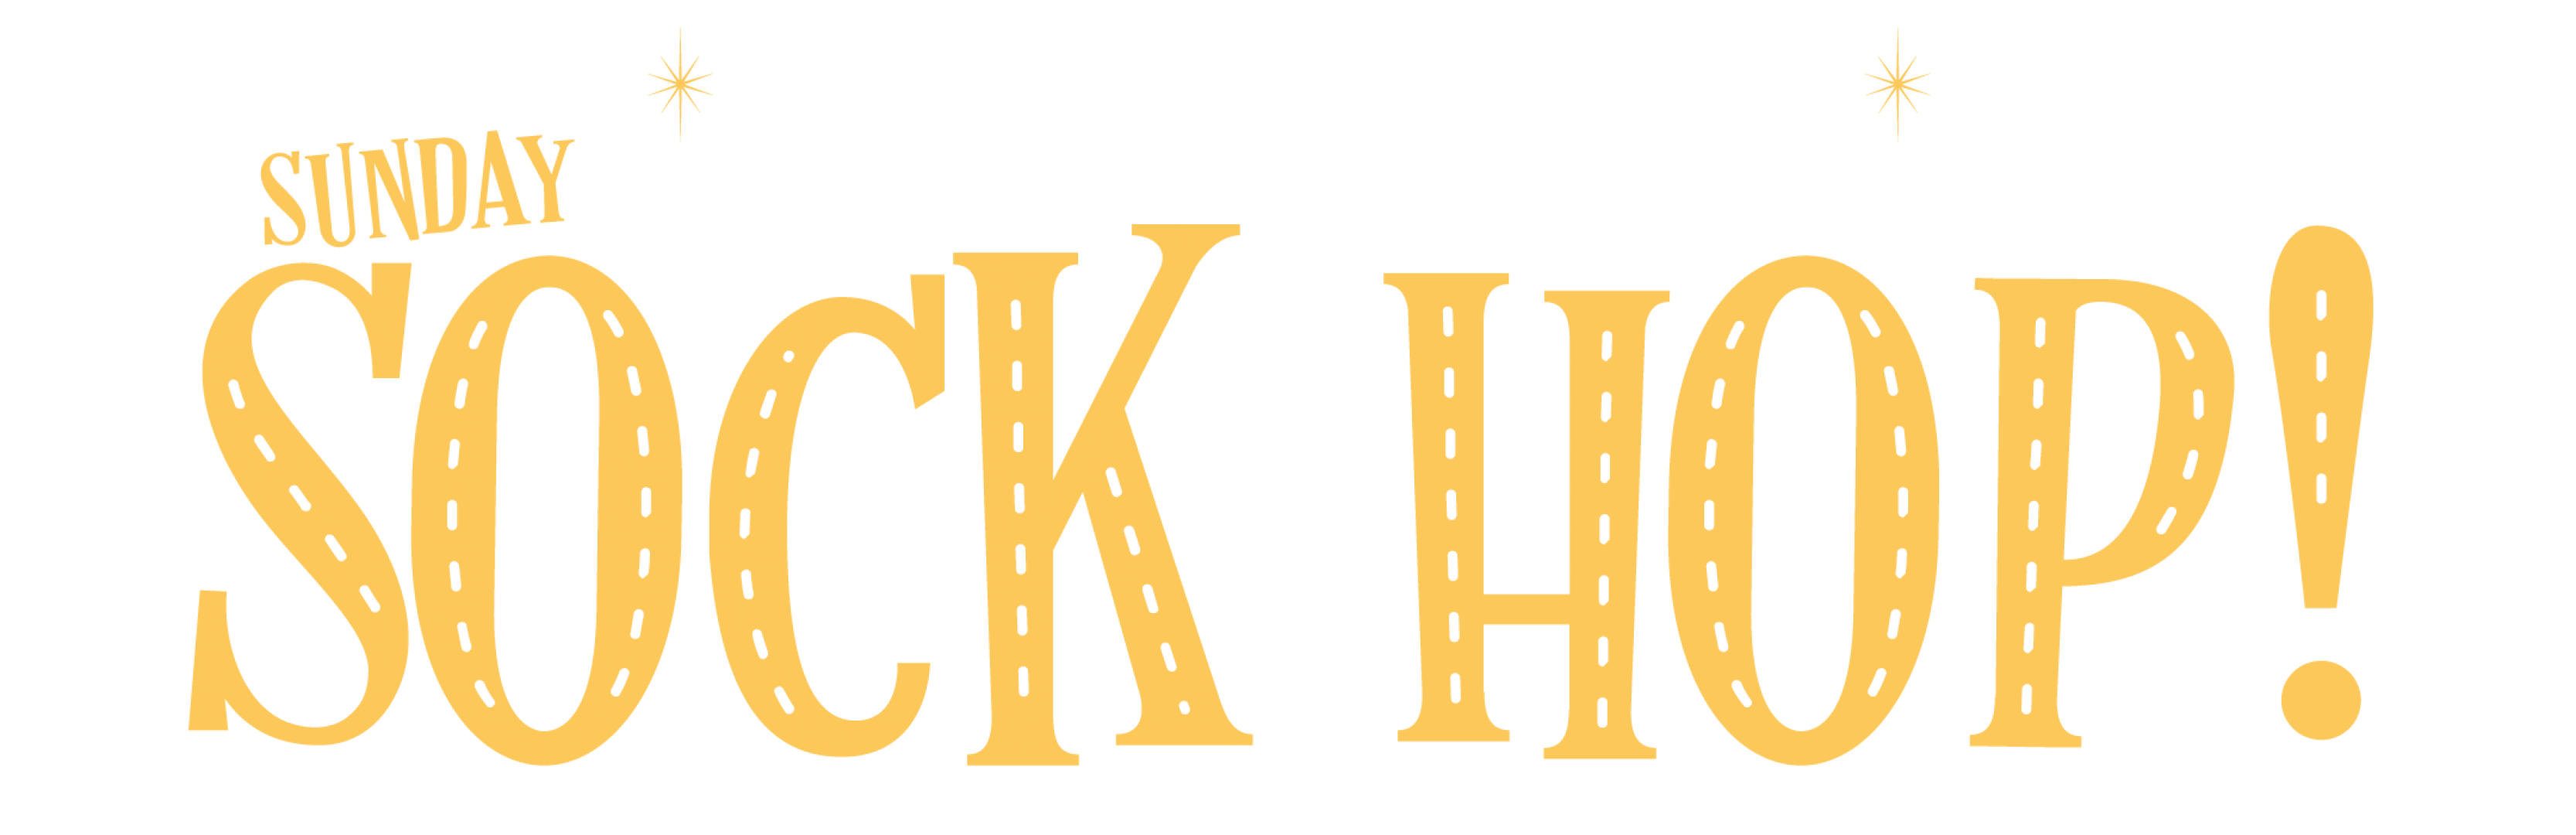 text that reads 'Congress Hall presents: Sunday Sock Hop!